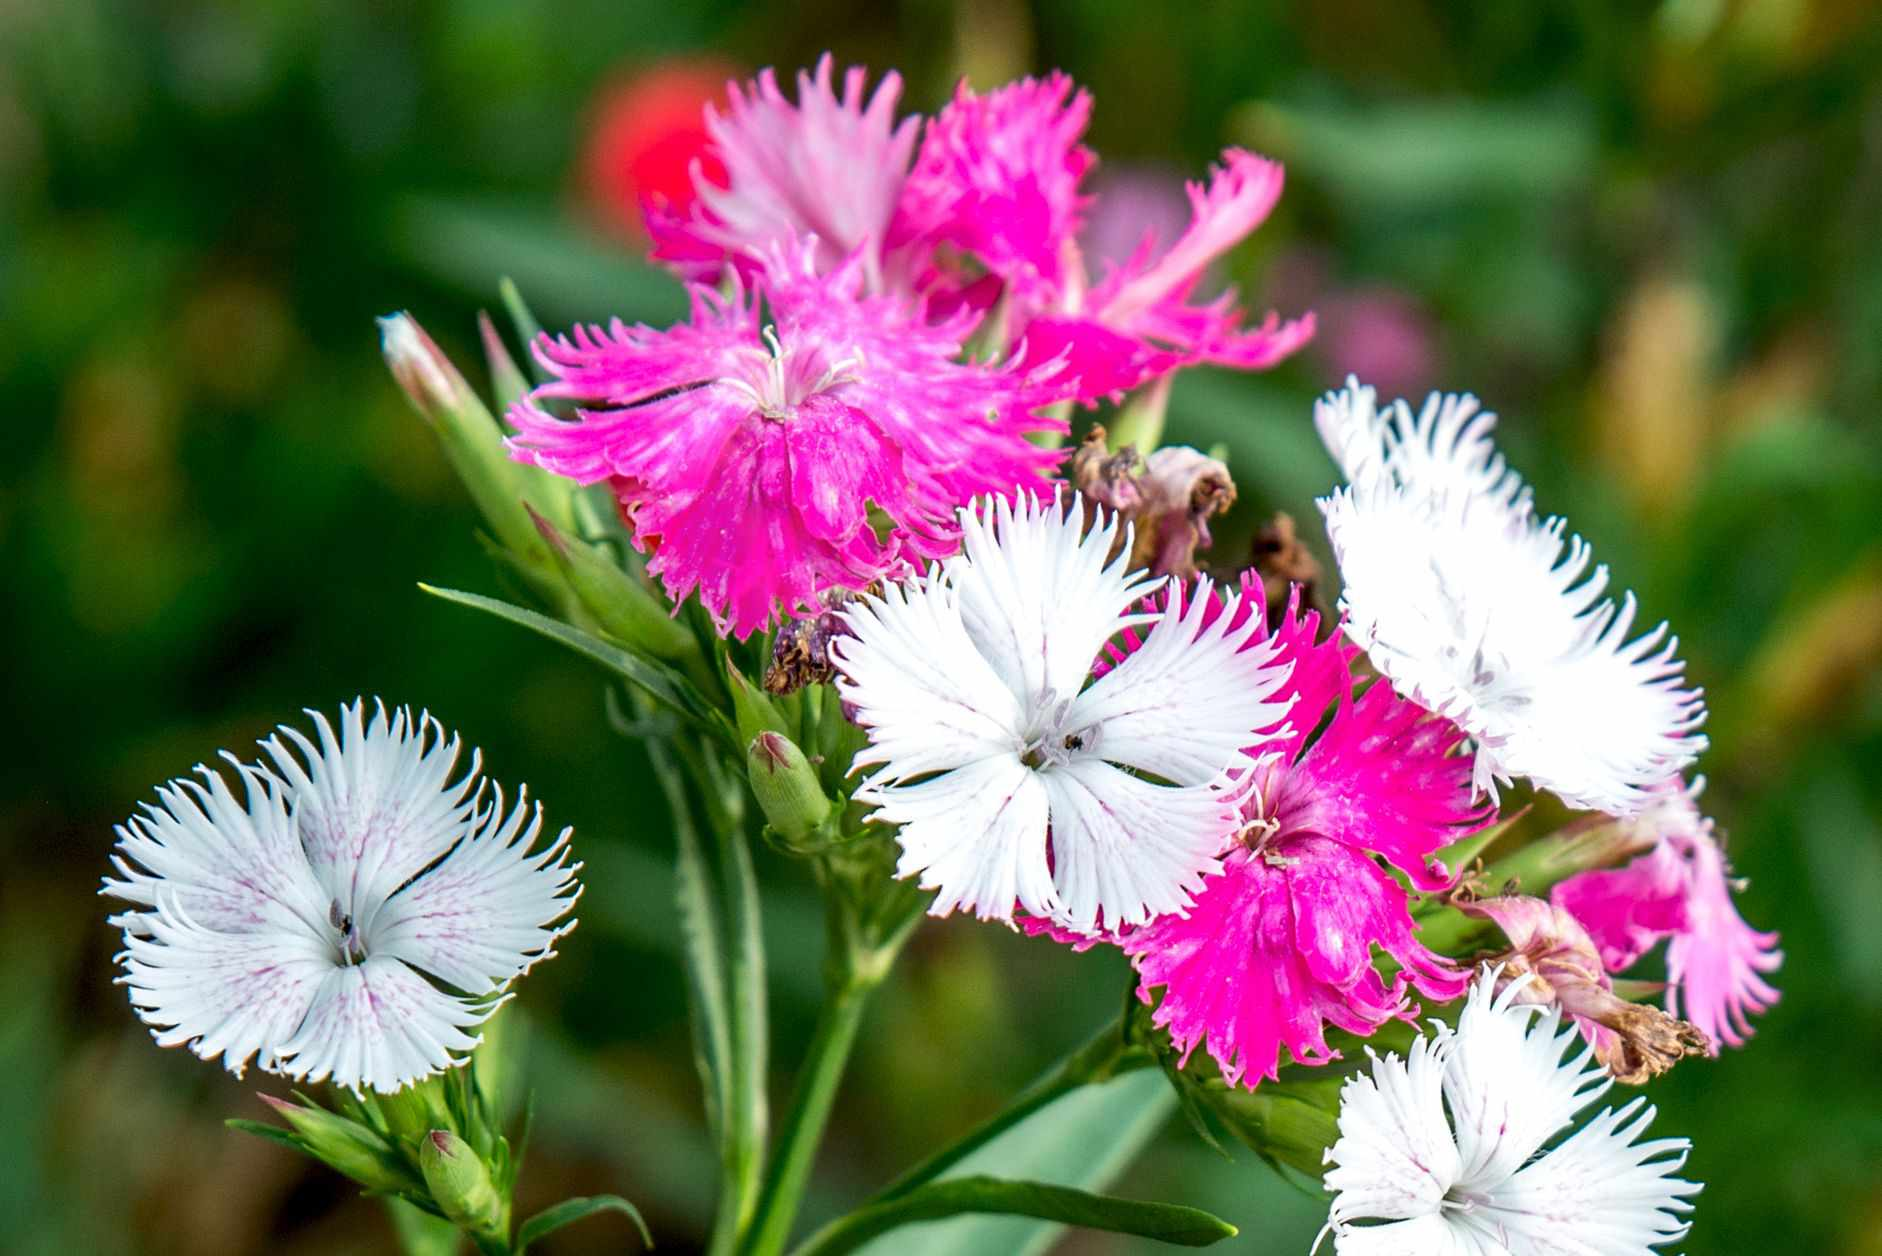 Dianthus flowers with white and bright pink colored petals in garden closeup